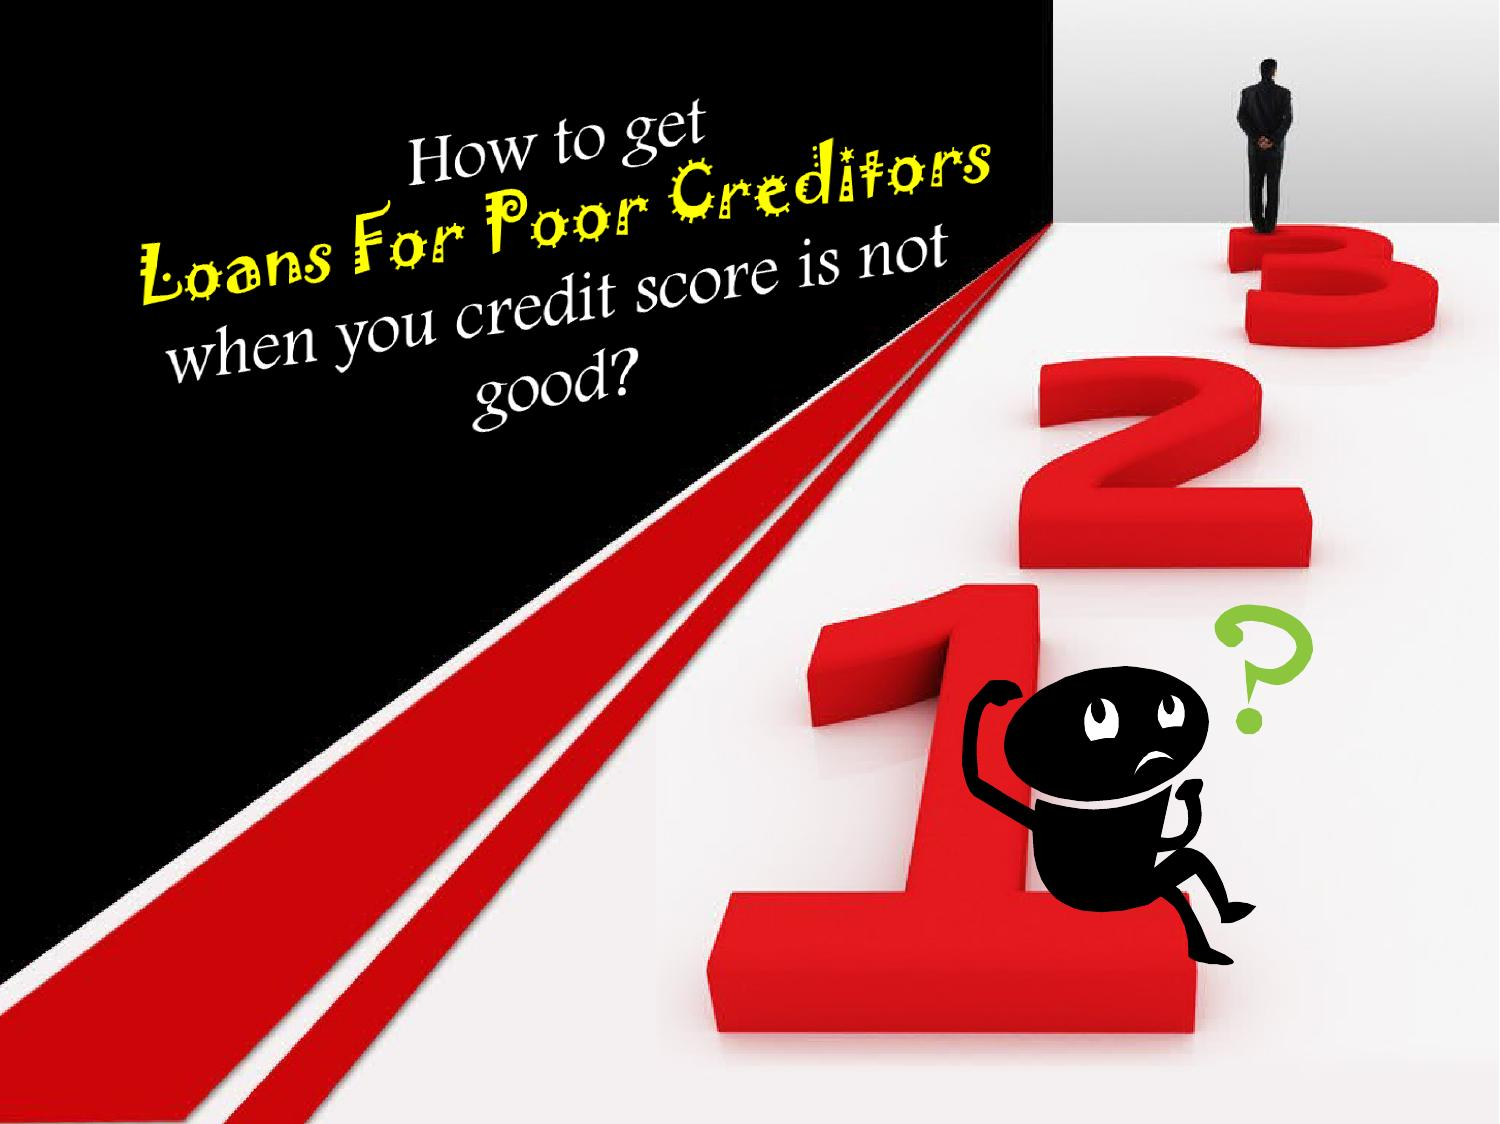 Loans For Poor Creditors- Little efforts online can find you quick funds now by Parth Shah - Issuu